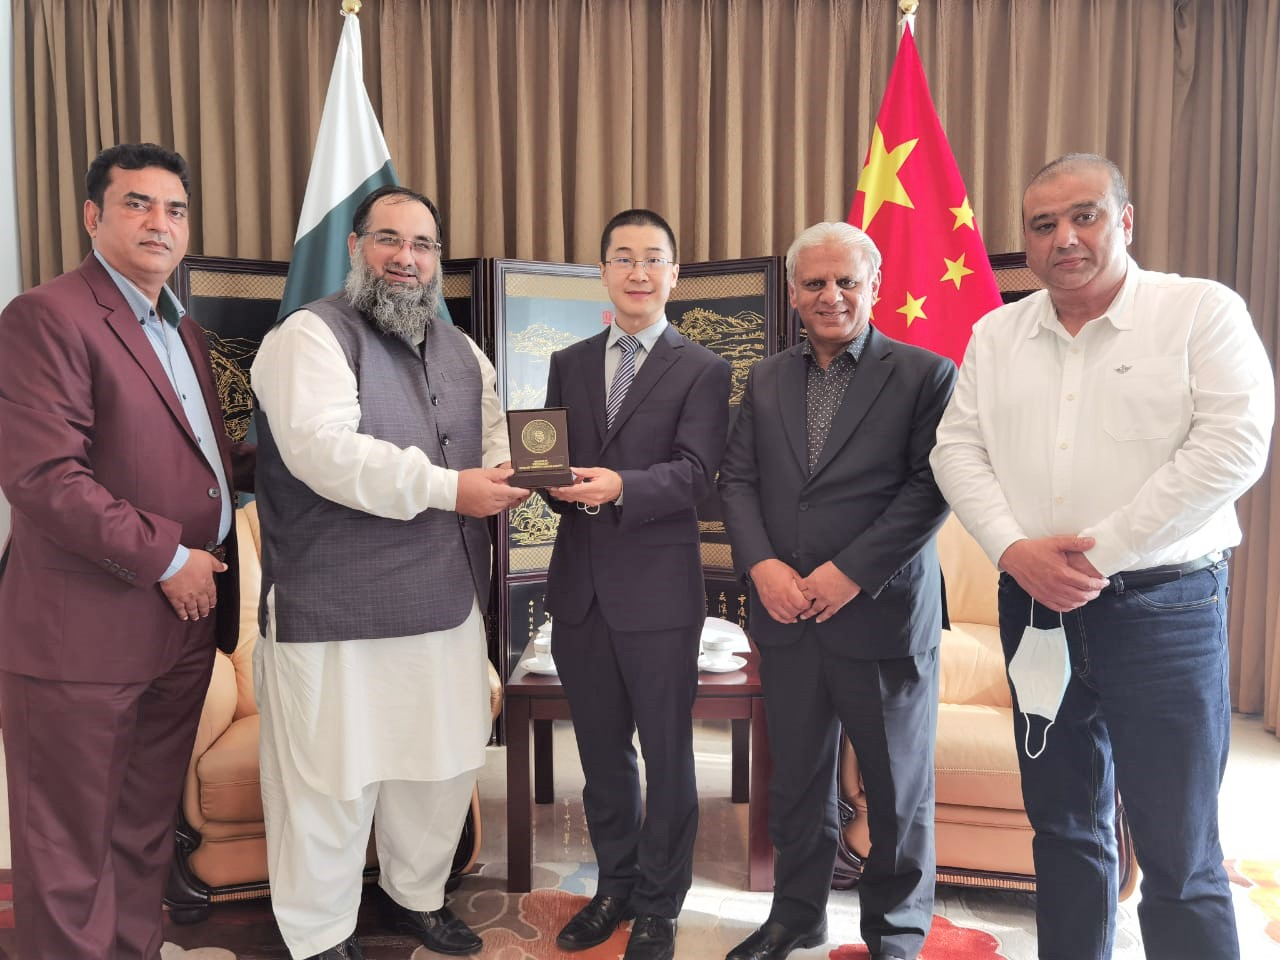 On September 07, 2021, A delegation of Sialkot Chamber of Commerce & Industry had a meeting with Trade Officer, the Republic of China to Pakistan to discuss matters related to Trade & Visas. The Delegation was led by Mr. Khuram Aslam, Senior Vice President and Mr. Ansar Aziz Puri accompanied by Mr. Mohammad Sarwar and Mr. Mohammad Bilal Dar, SCCI Executive Committee Members.